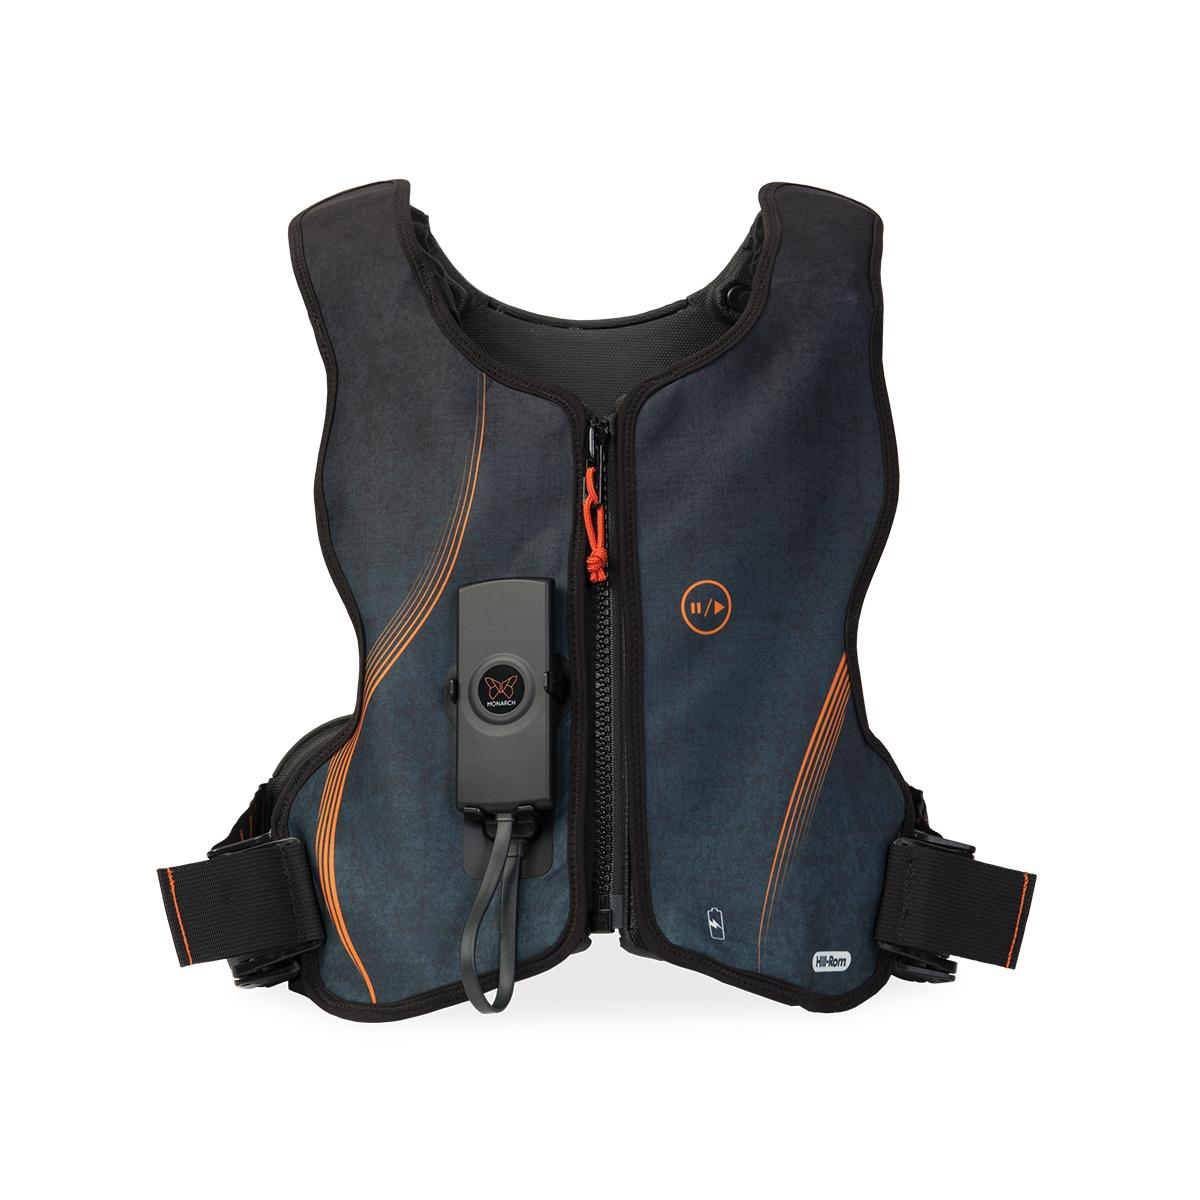 The Monarch® System's sportswear-inspired design features vest shell color and pattern options. This example shows the Graphite Orange vest shell.